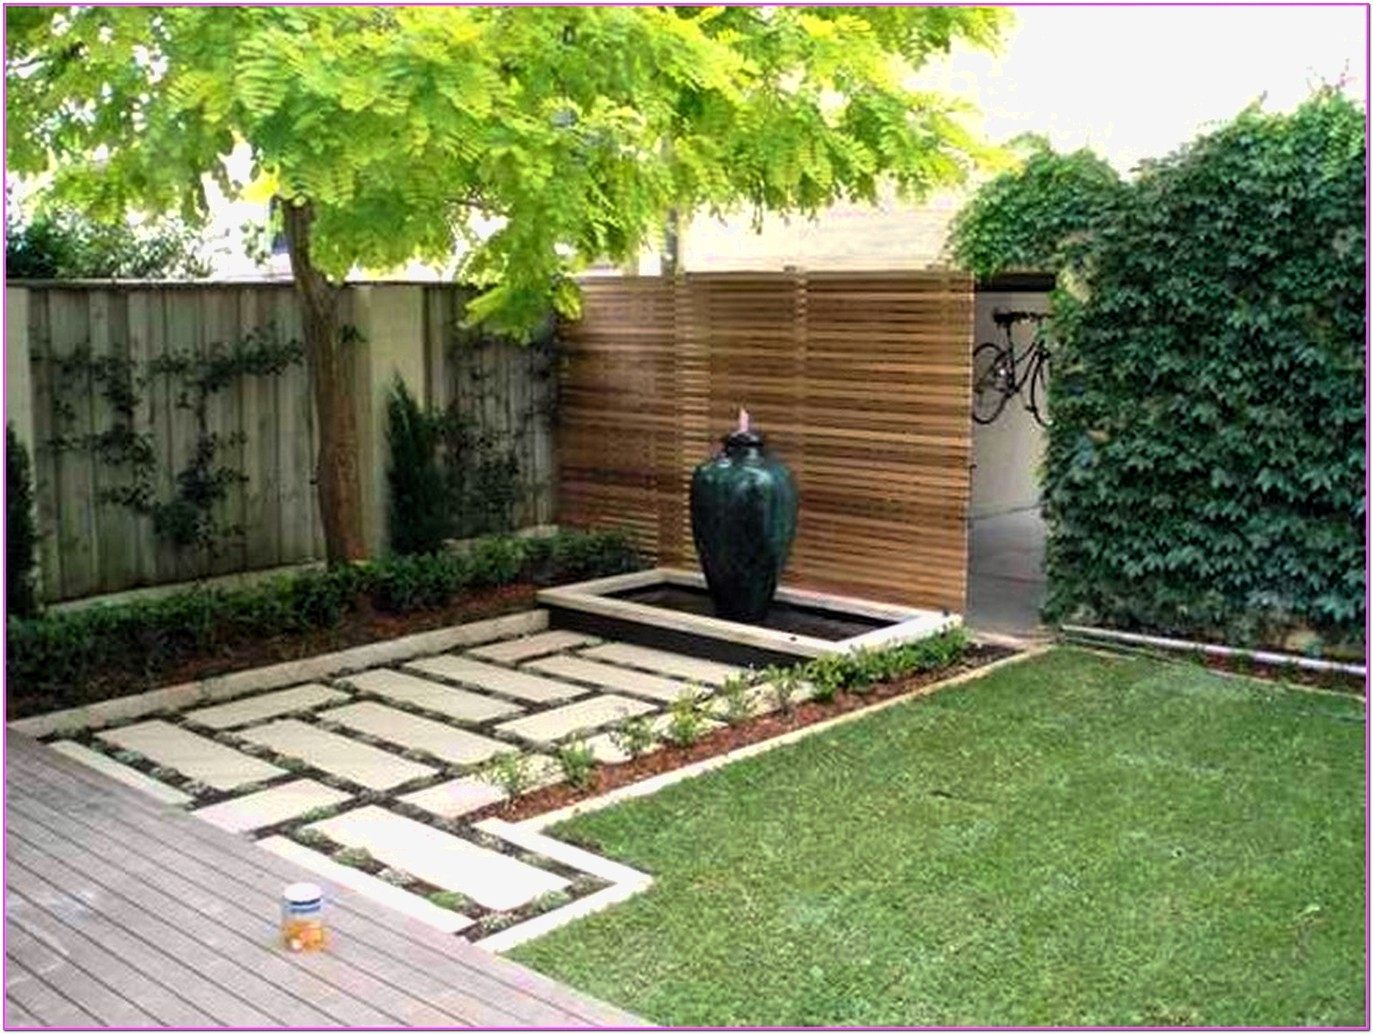 Garden Ideas Cheap Landscaping For Best Small Yard Landscaping Ideas pertaining to 15 Awesome Ways How to Improve Cheap Backyard Ideas